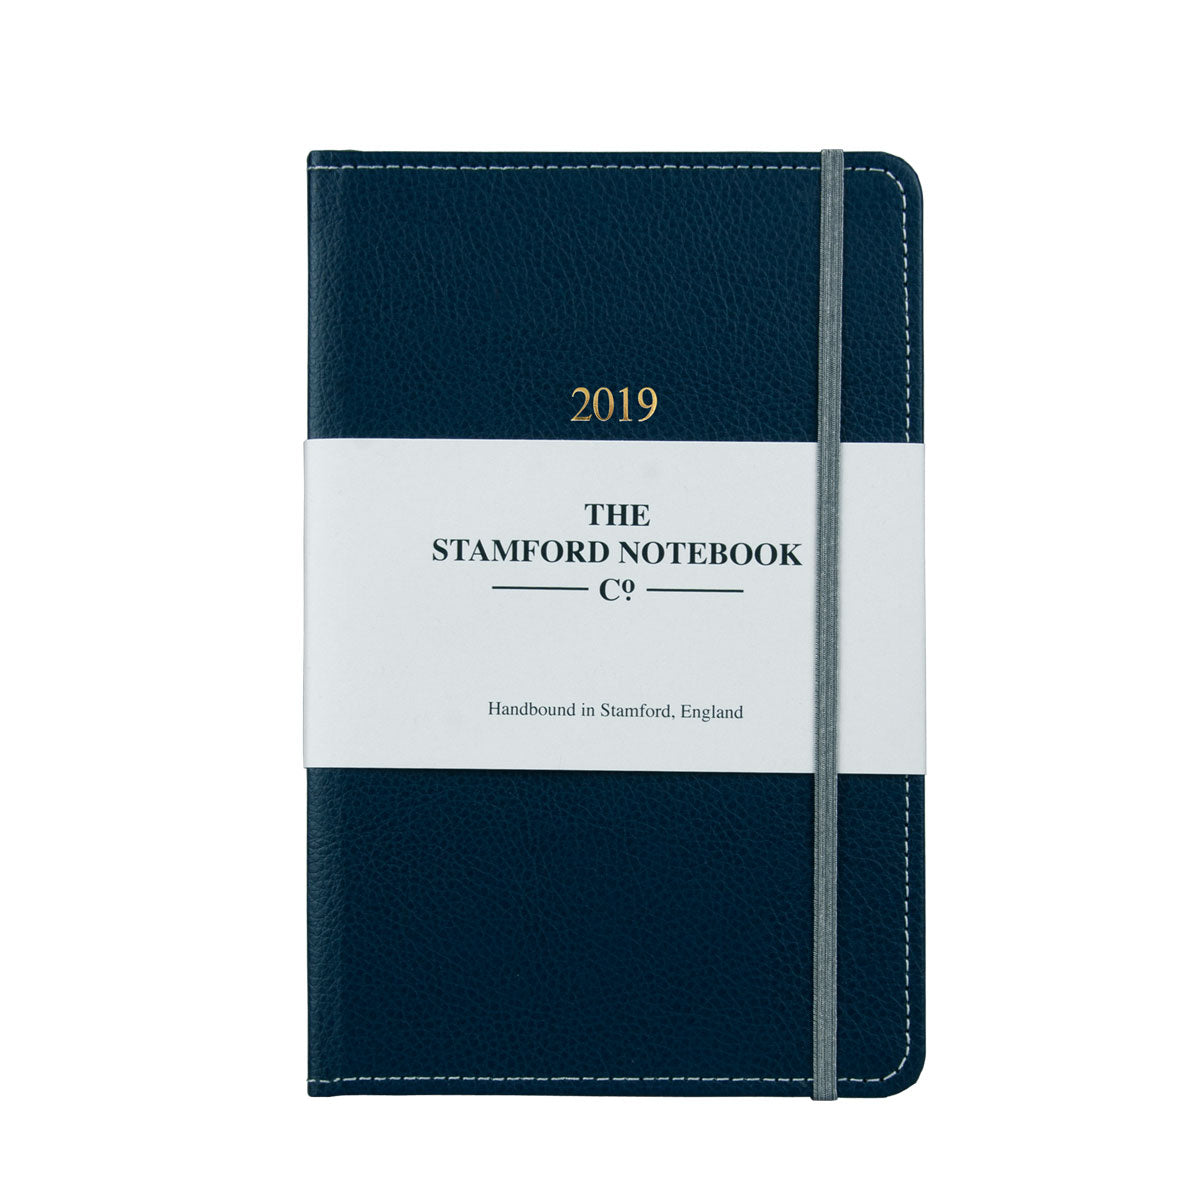 Marine Blue leather diary with grey stitching